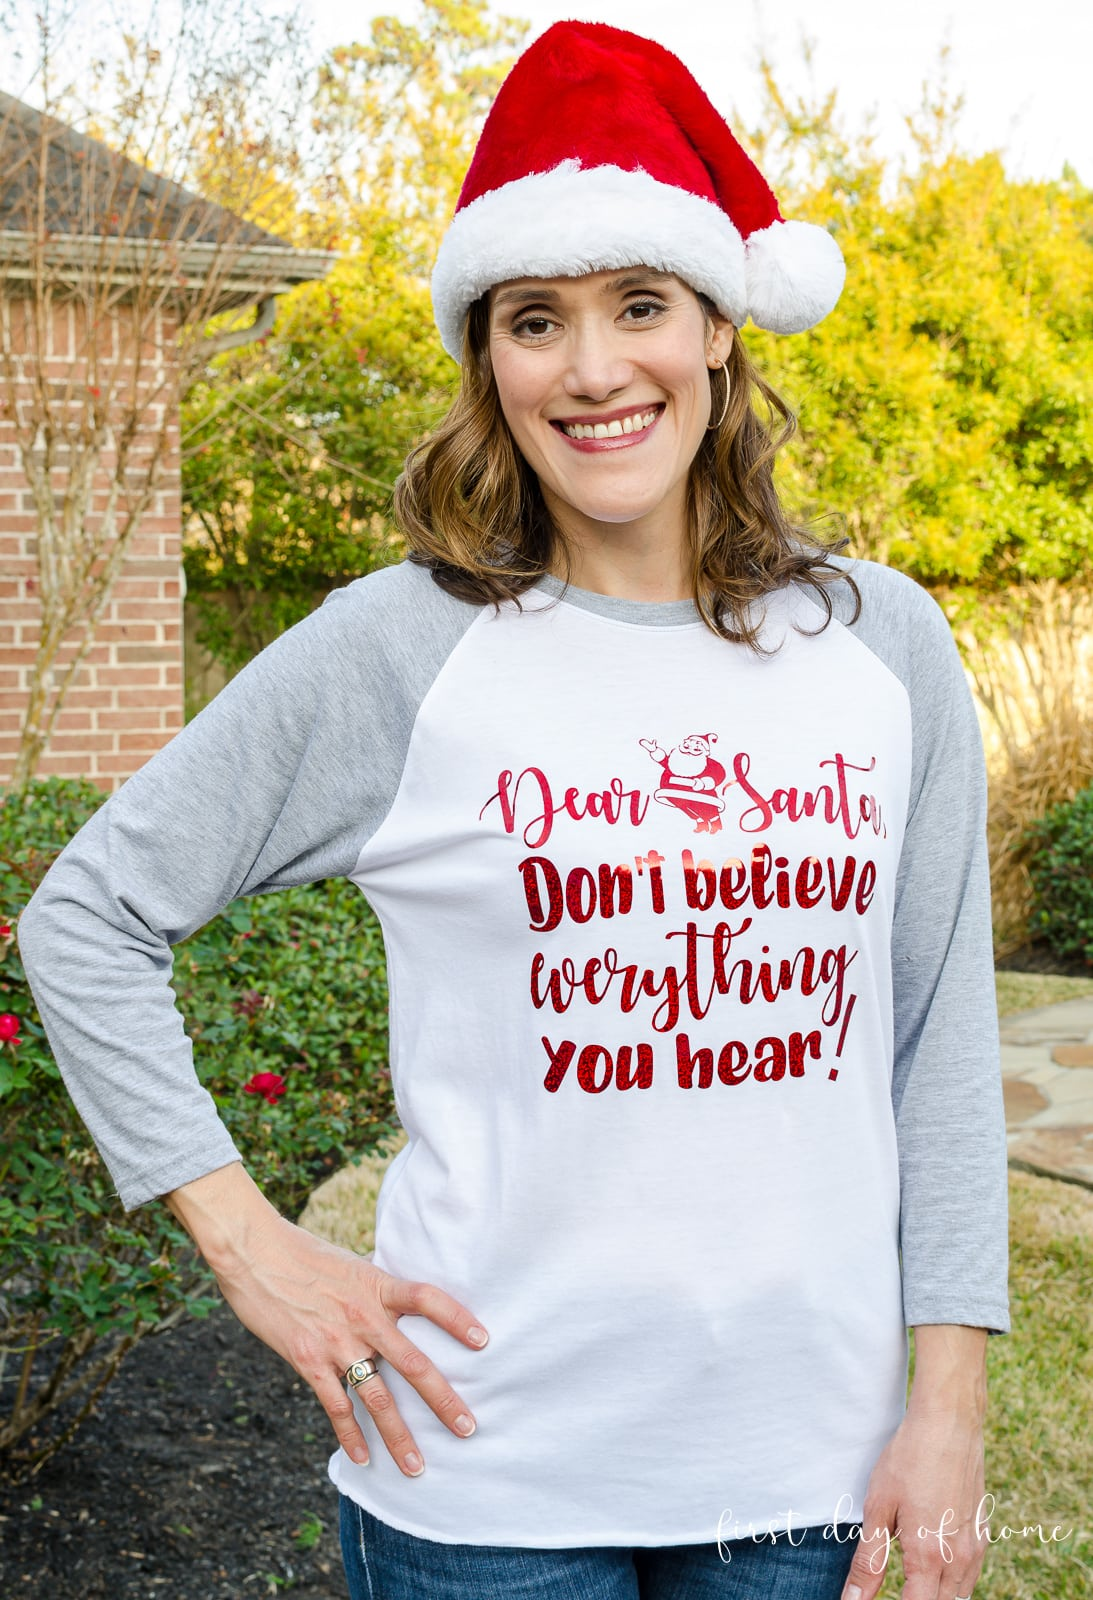 Crissy wearing Santa Claus t-shirt with free Santa SVG made with Silhouette Cameo